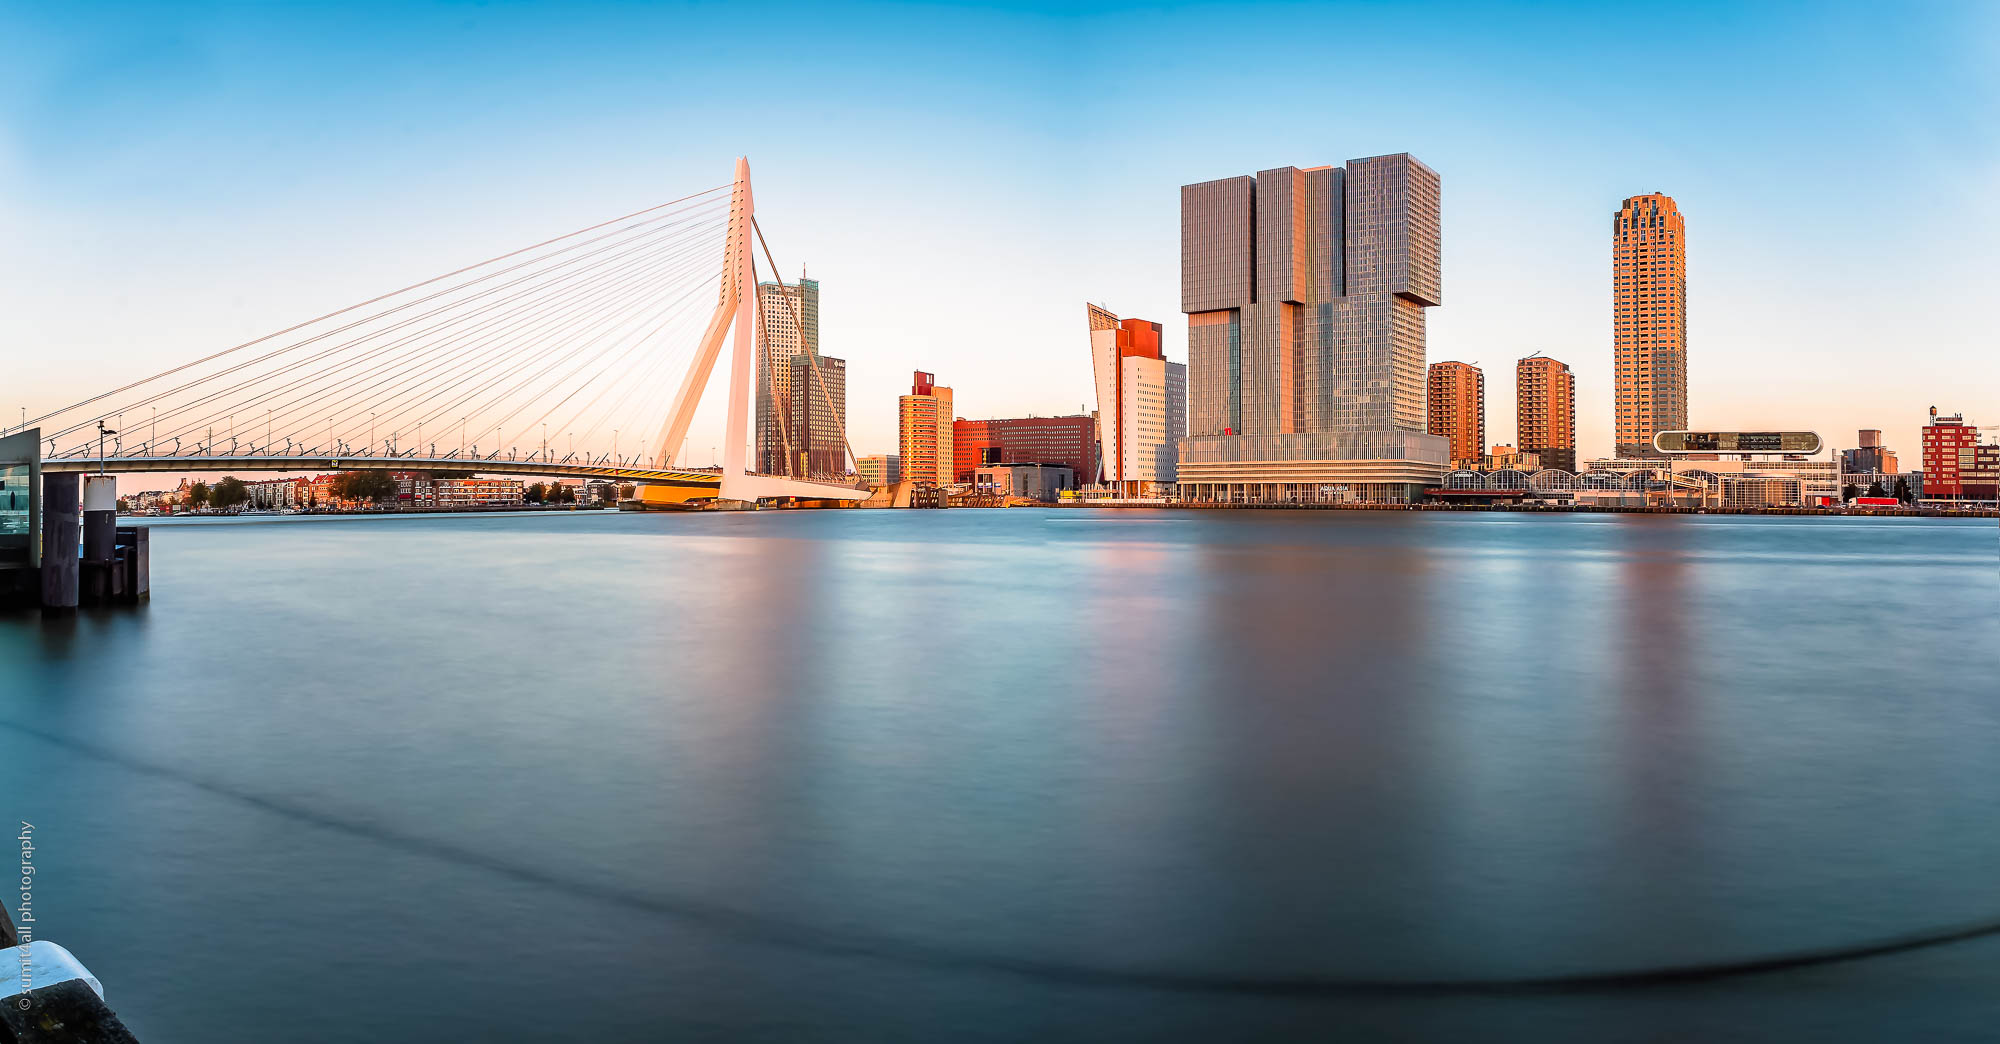 The Erasmus Bridge and Rotterdam Skyline at Sunset